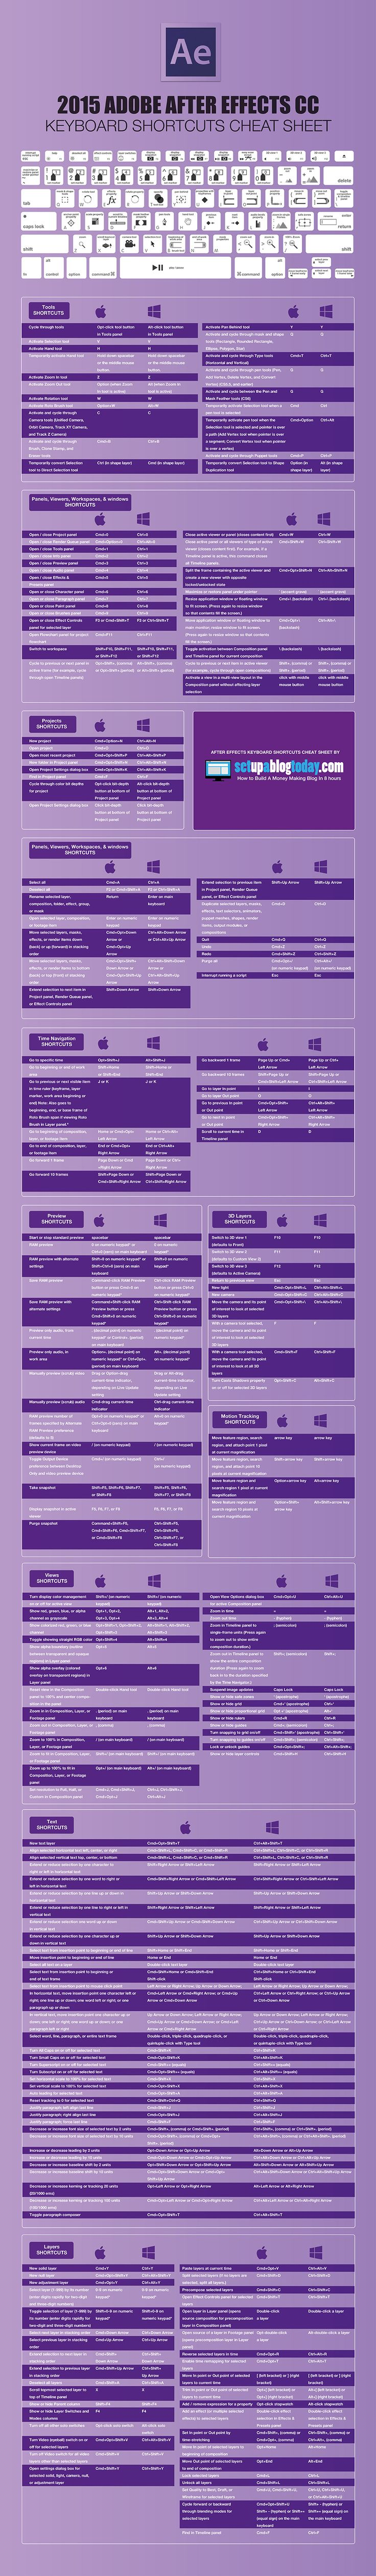 after effects keyboard shortcuts cheat sheet